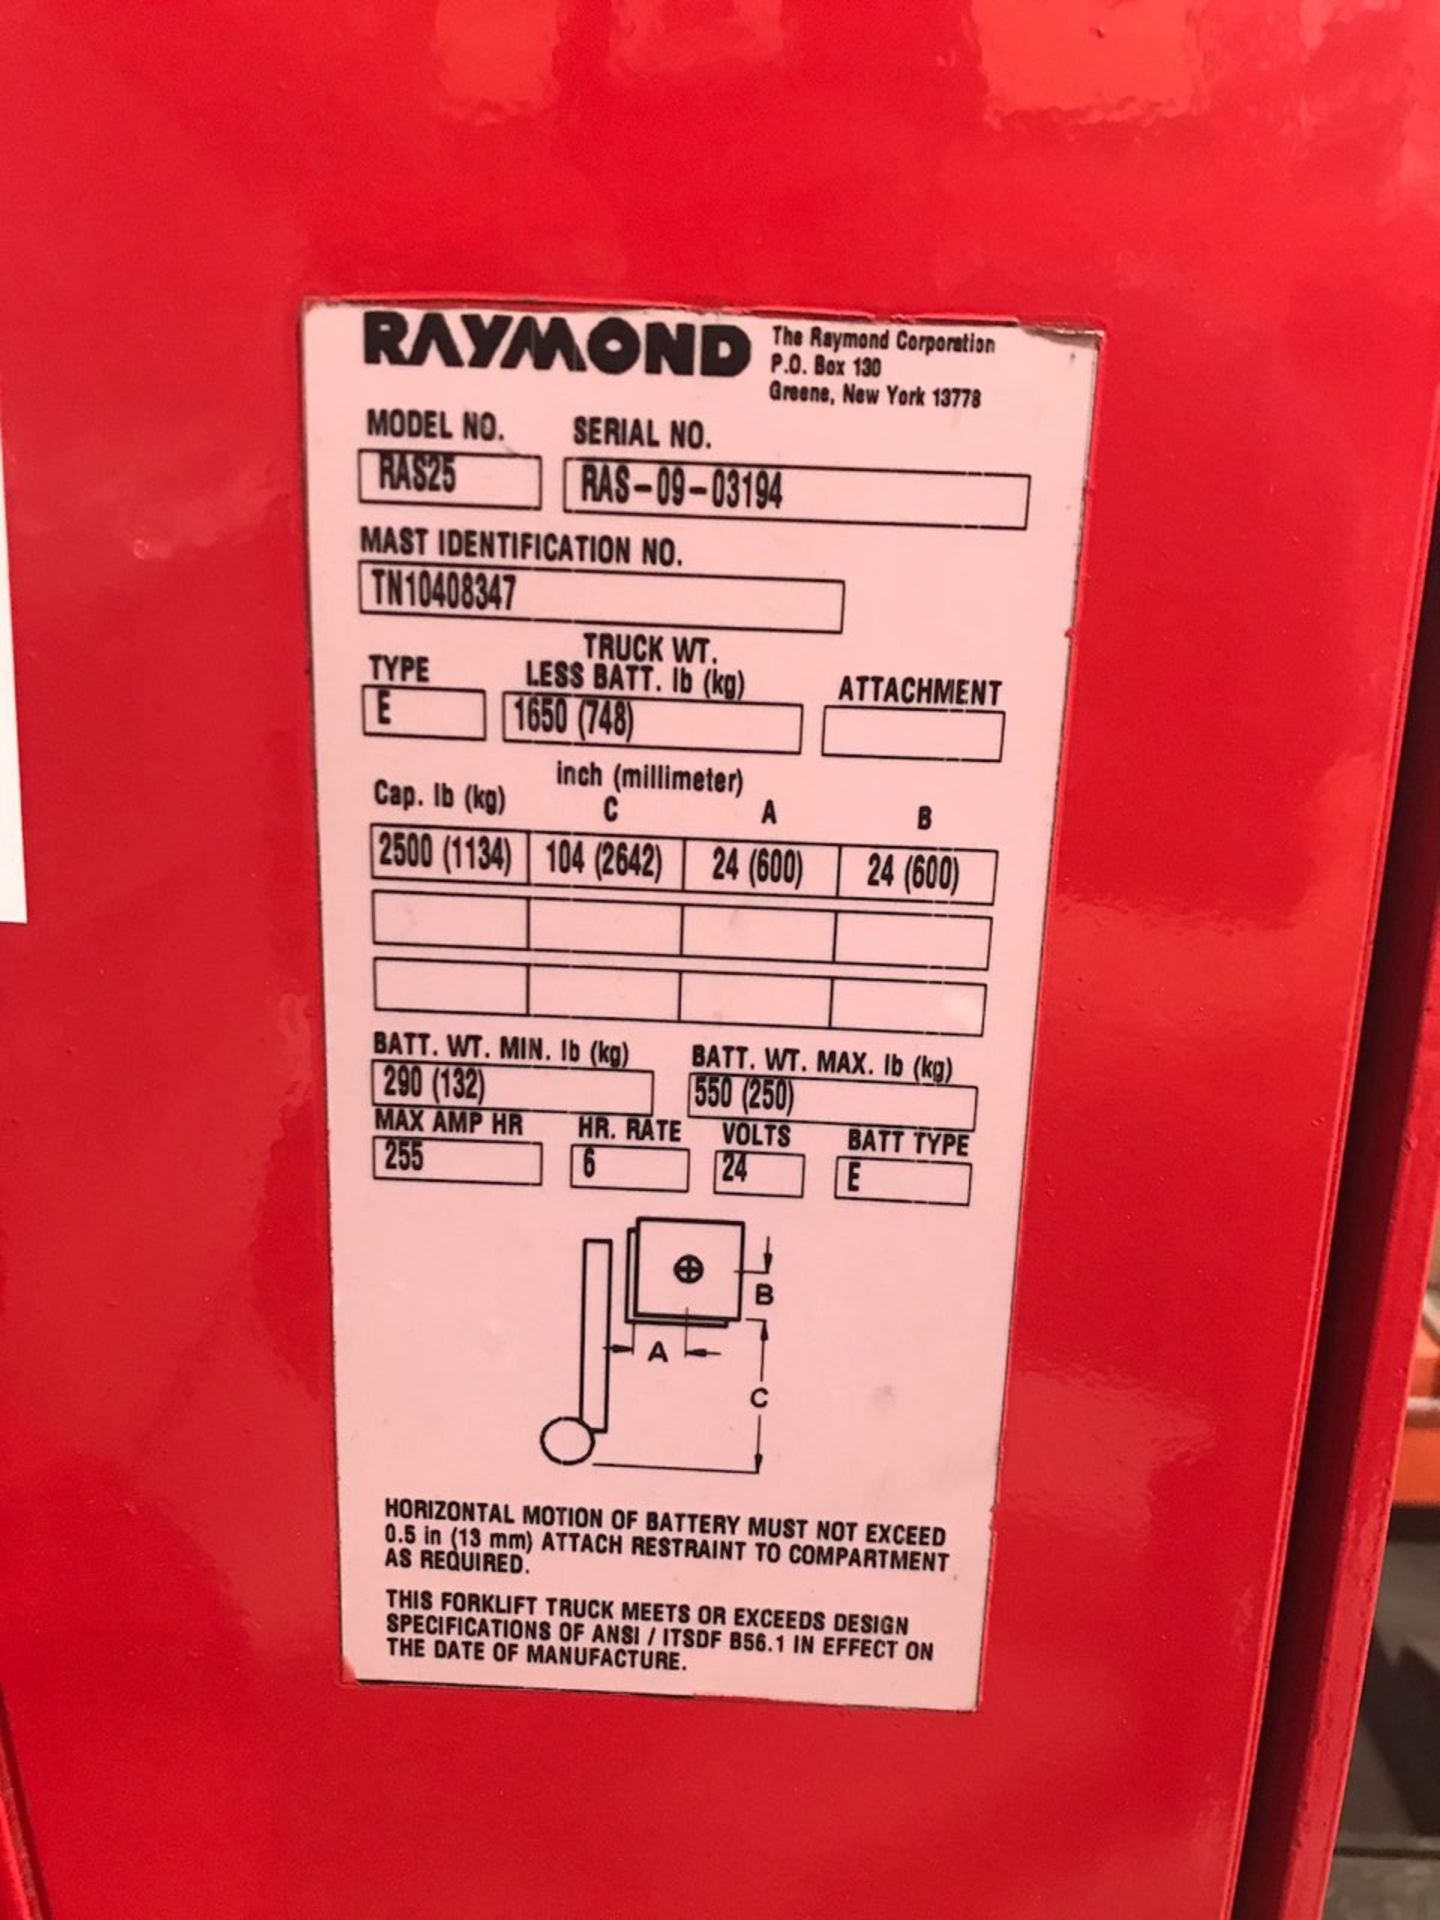 (LOCATED IN CANADA) Raymond Walkie Straddle Truck, Model# RAS25, Serial# RAS-09-03194, 24V - Image 3 of 5